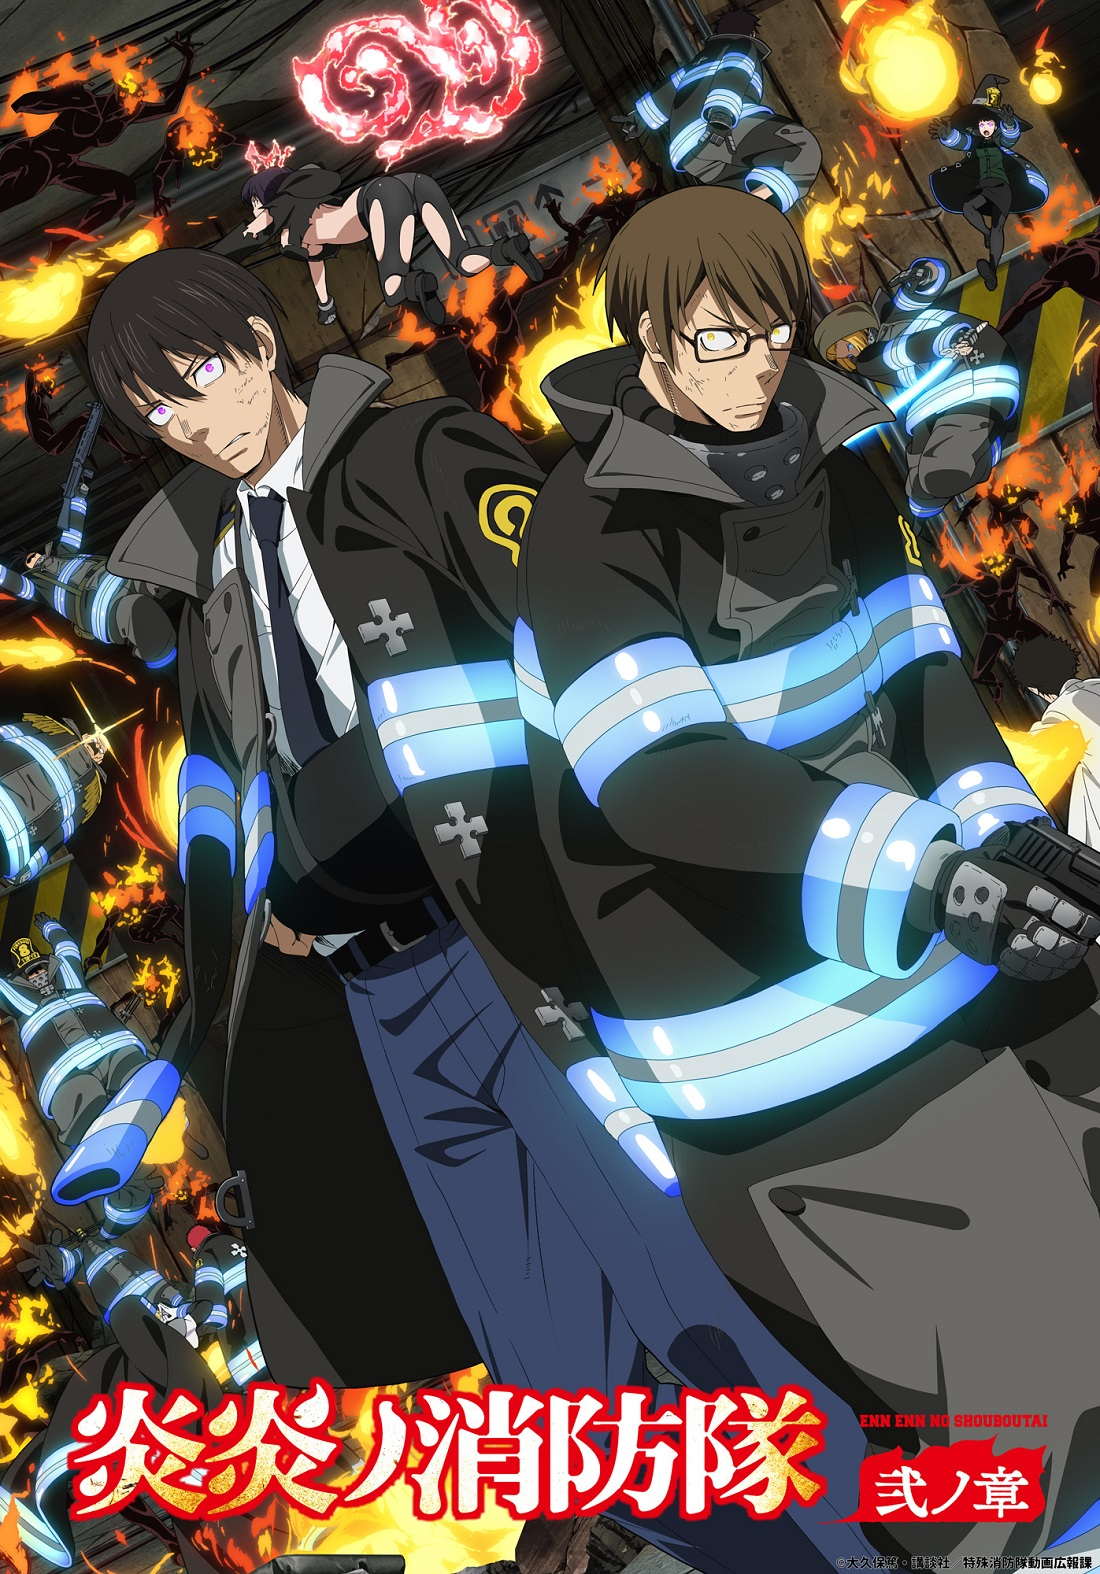 Enen no Shouboutai: new visual second arc